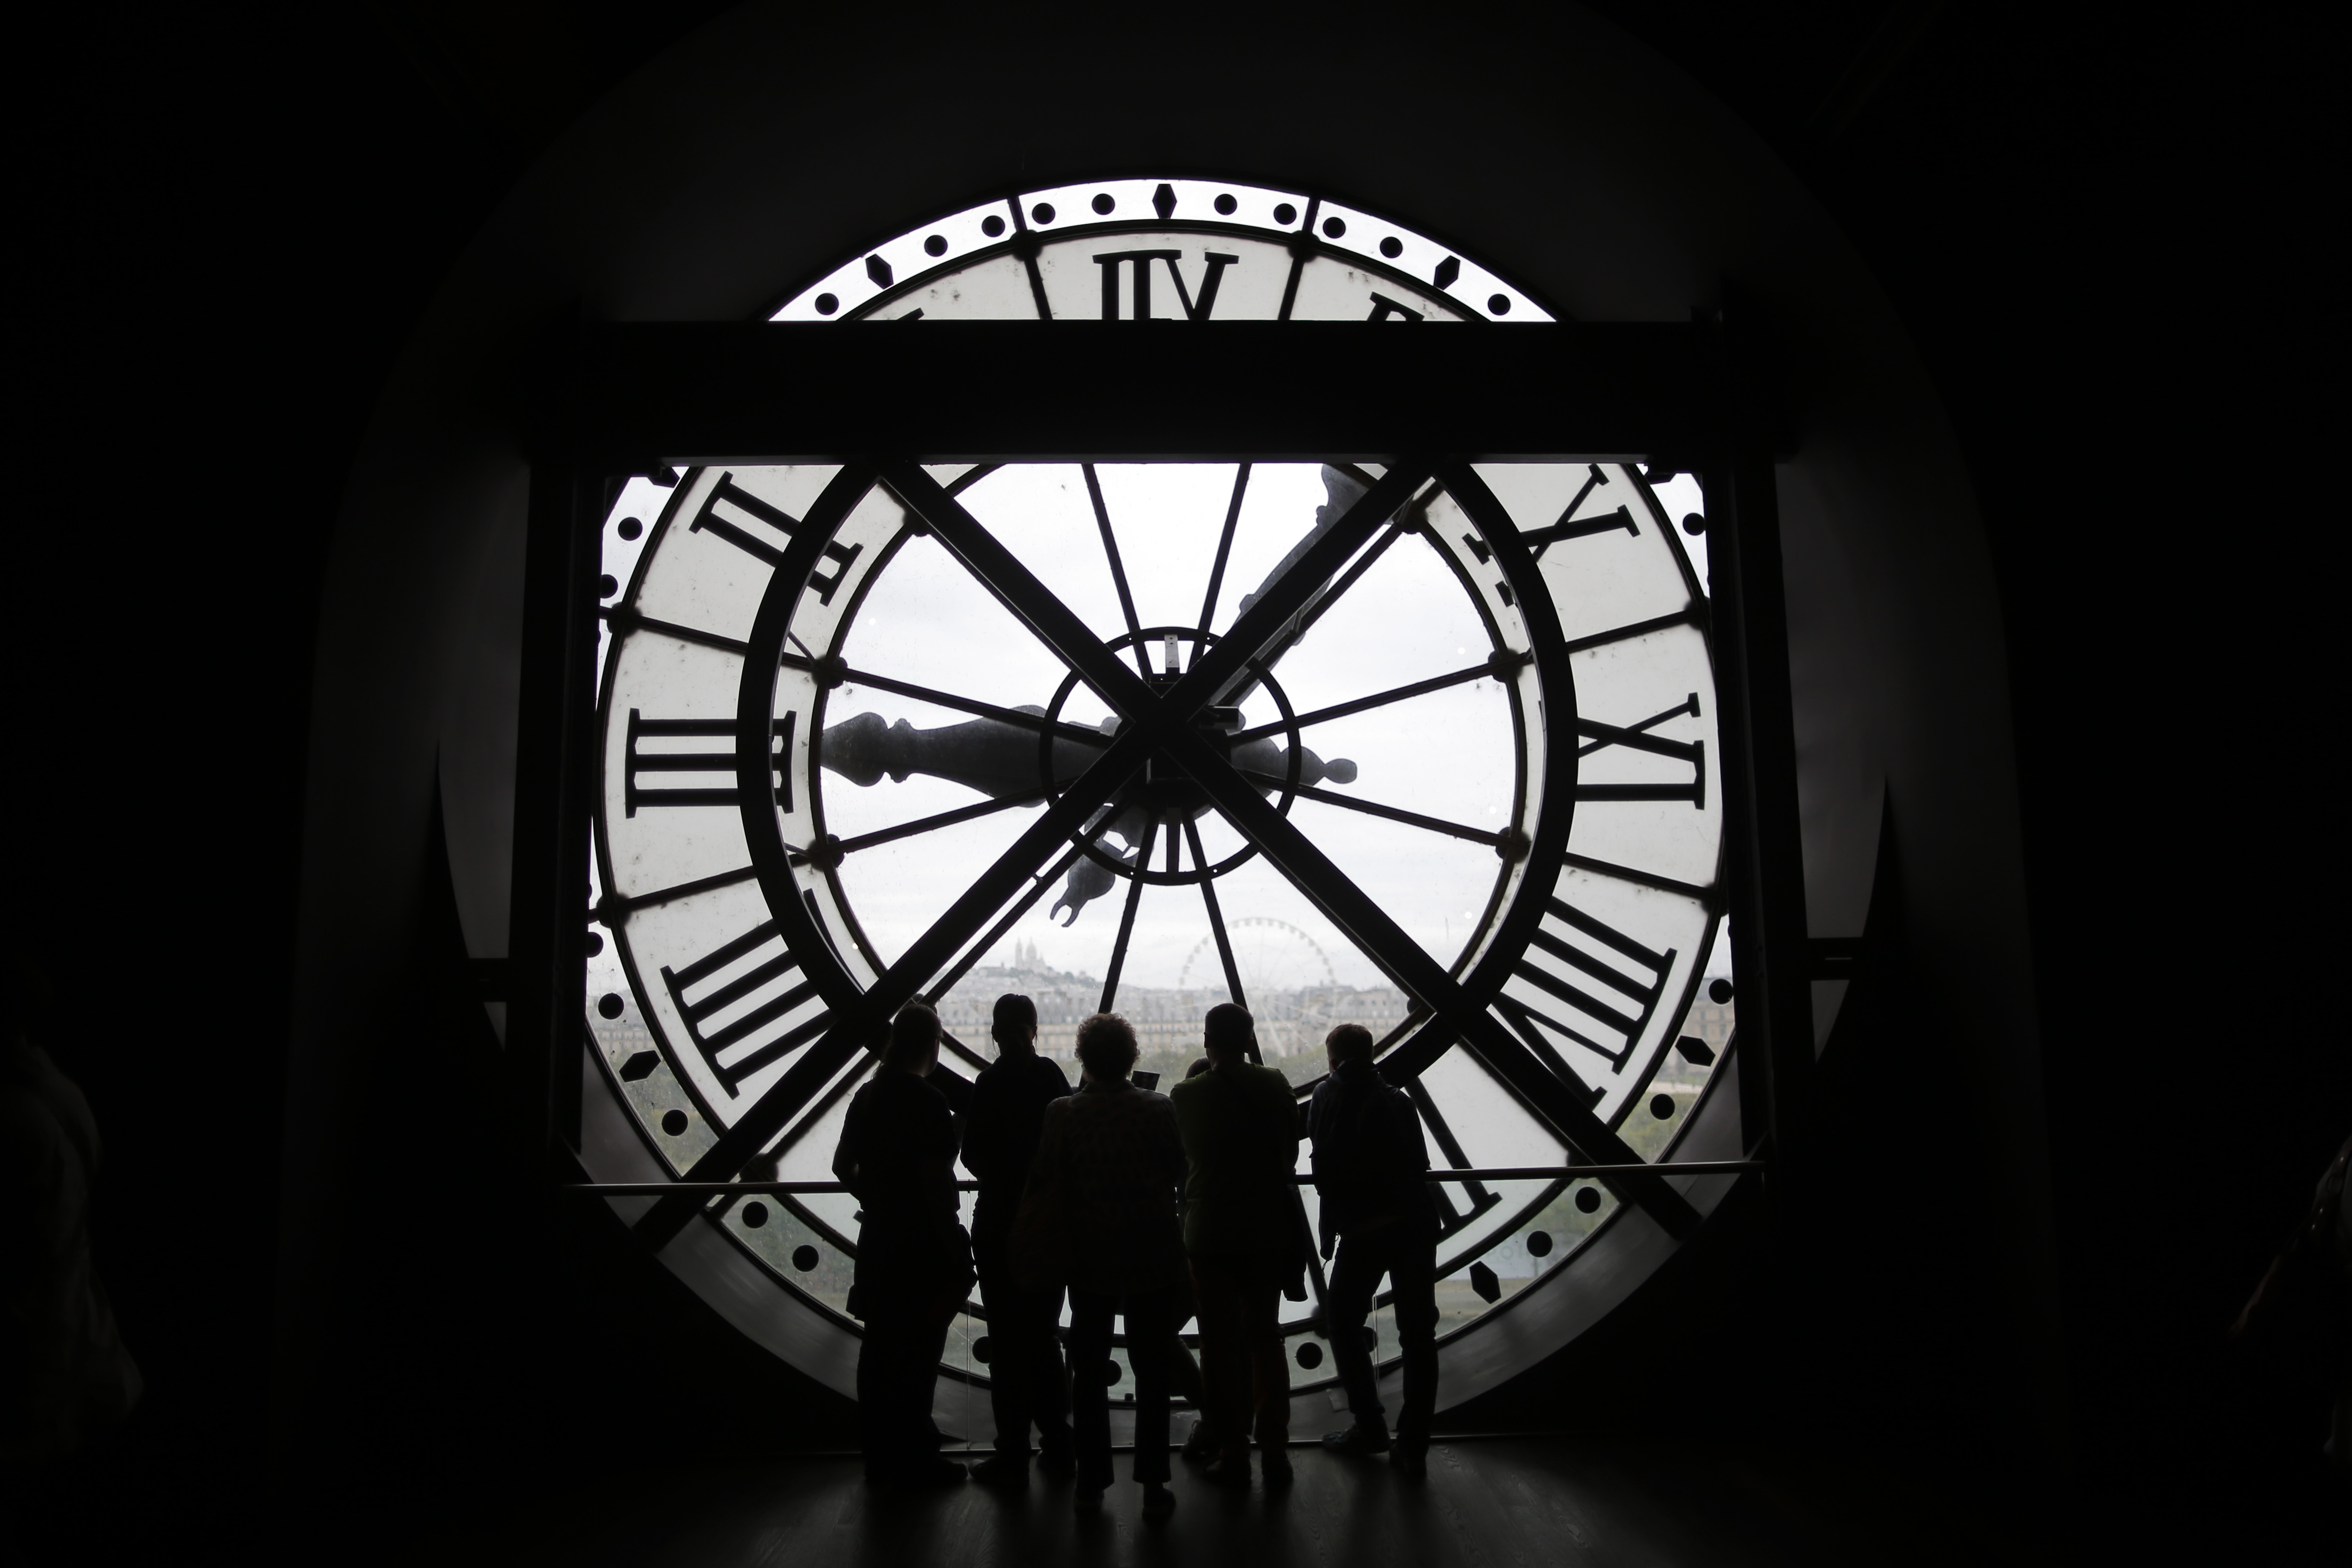 Visitors at the Musee d'Orsay are seen in silhouette as they look behind a giant clock face at the former Orsay railway station, in Paris, France July 28, 2015. The national museum of the Musee d'Orsay opened in December 1986 and it displays collections of art from the period 1848 to 1914.  France has been the world's most visited country since the 1980's, welcoming 84 million tourists last year.   REUTERS/Stephane Mahe - PM1EB7S1DSU01